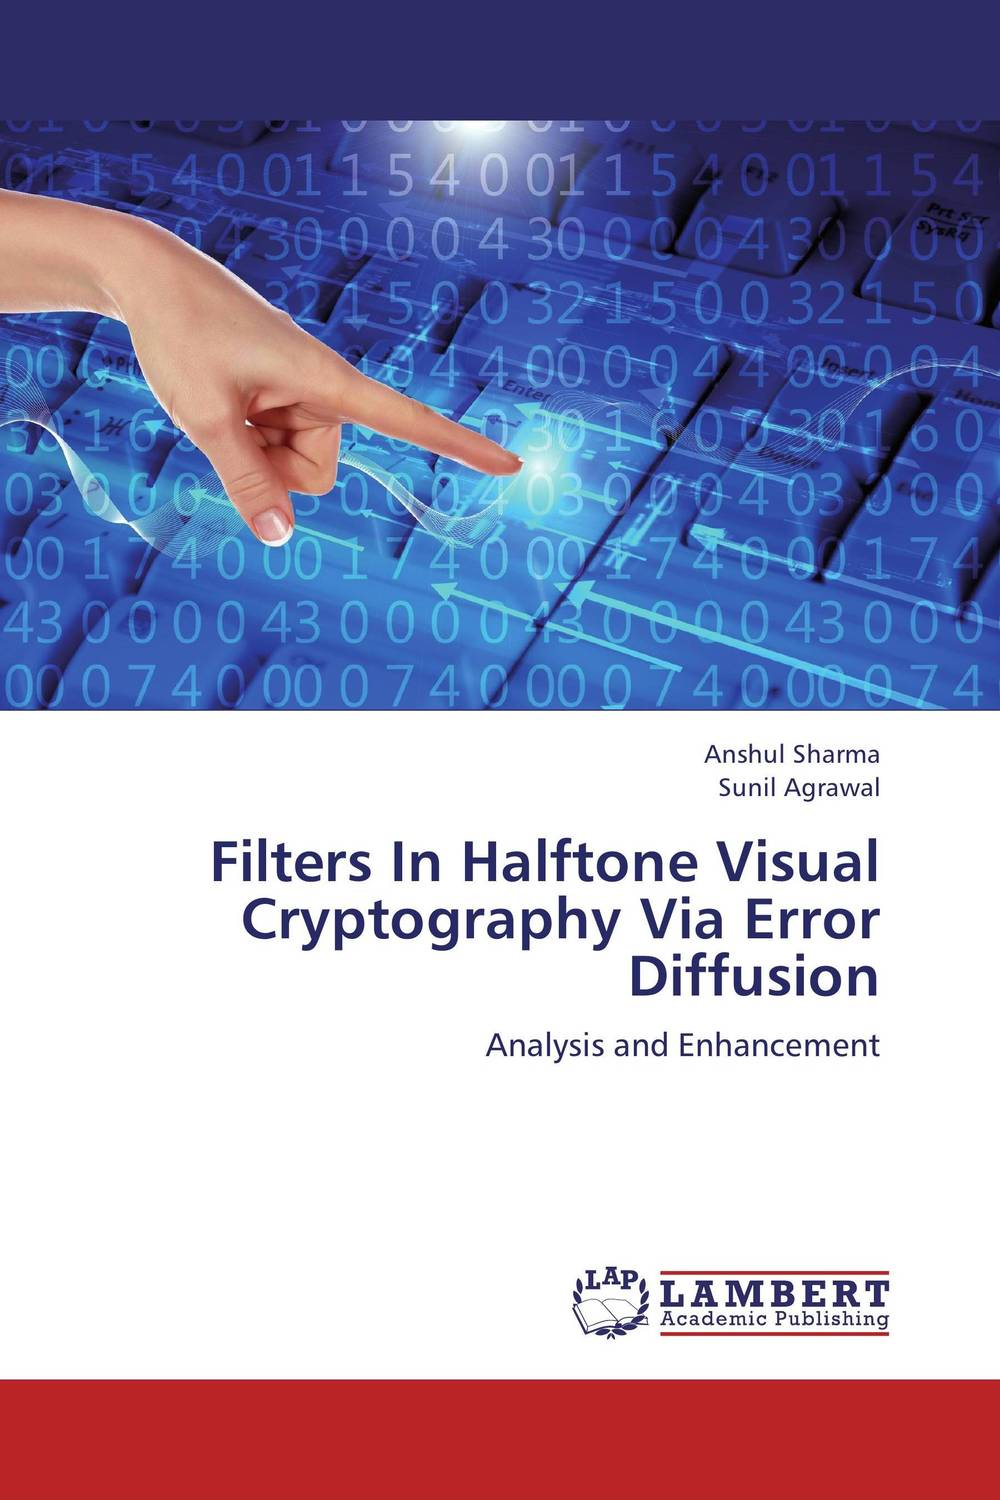 Filters In Halftone Visual Cryptography Via Error Diffusion visual communication spotlights for exhibition and trade fairs 40cm long arm and 30cm extra height